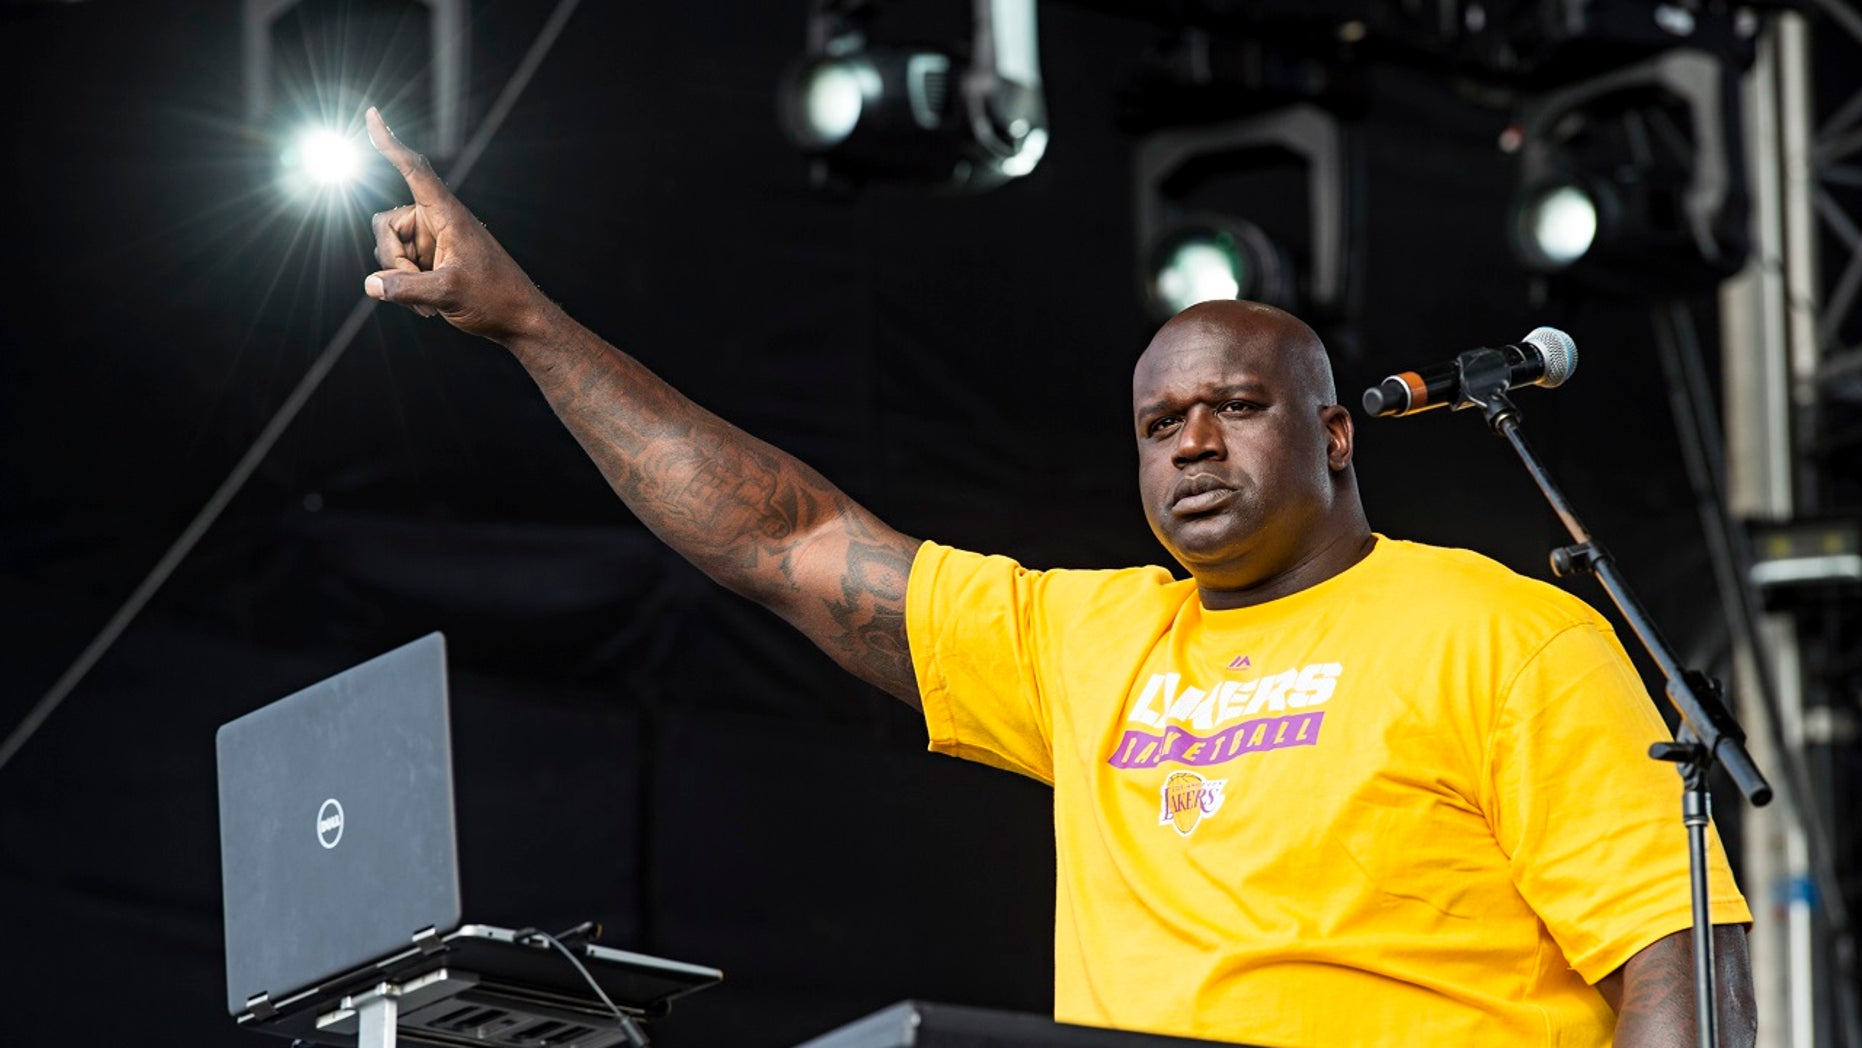 Shaquille O'Neal shared a video of a 'dance battle' with Rob Gronkowski on Instagram Saturday.